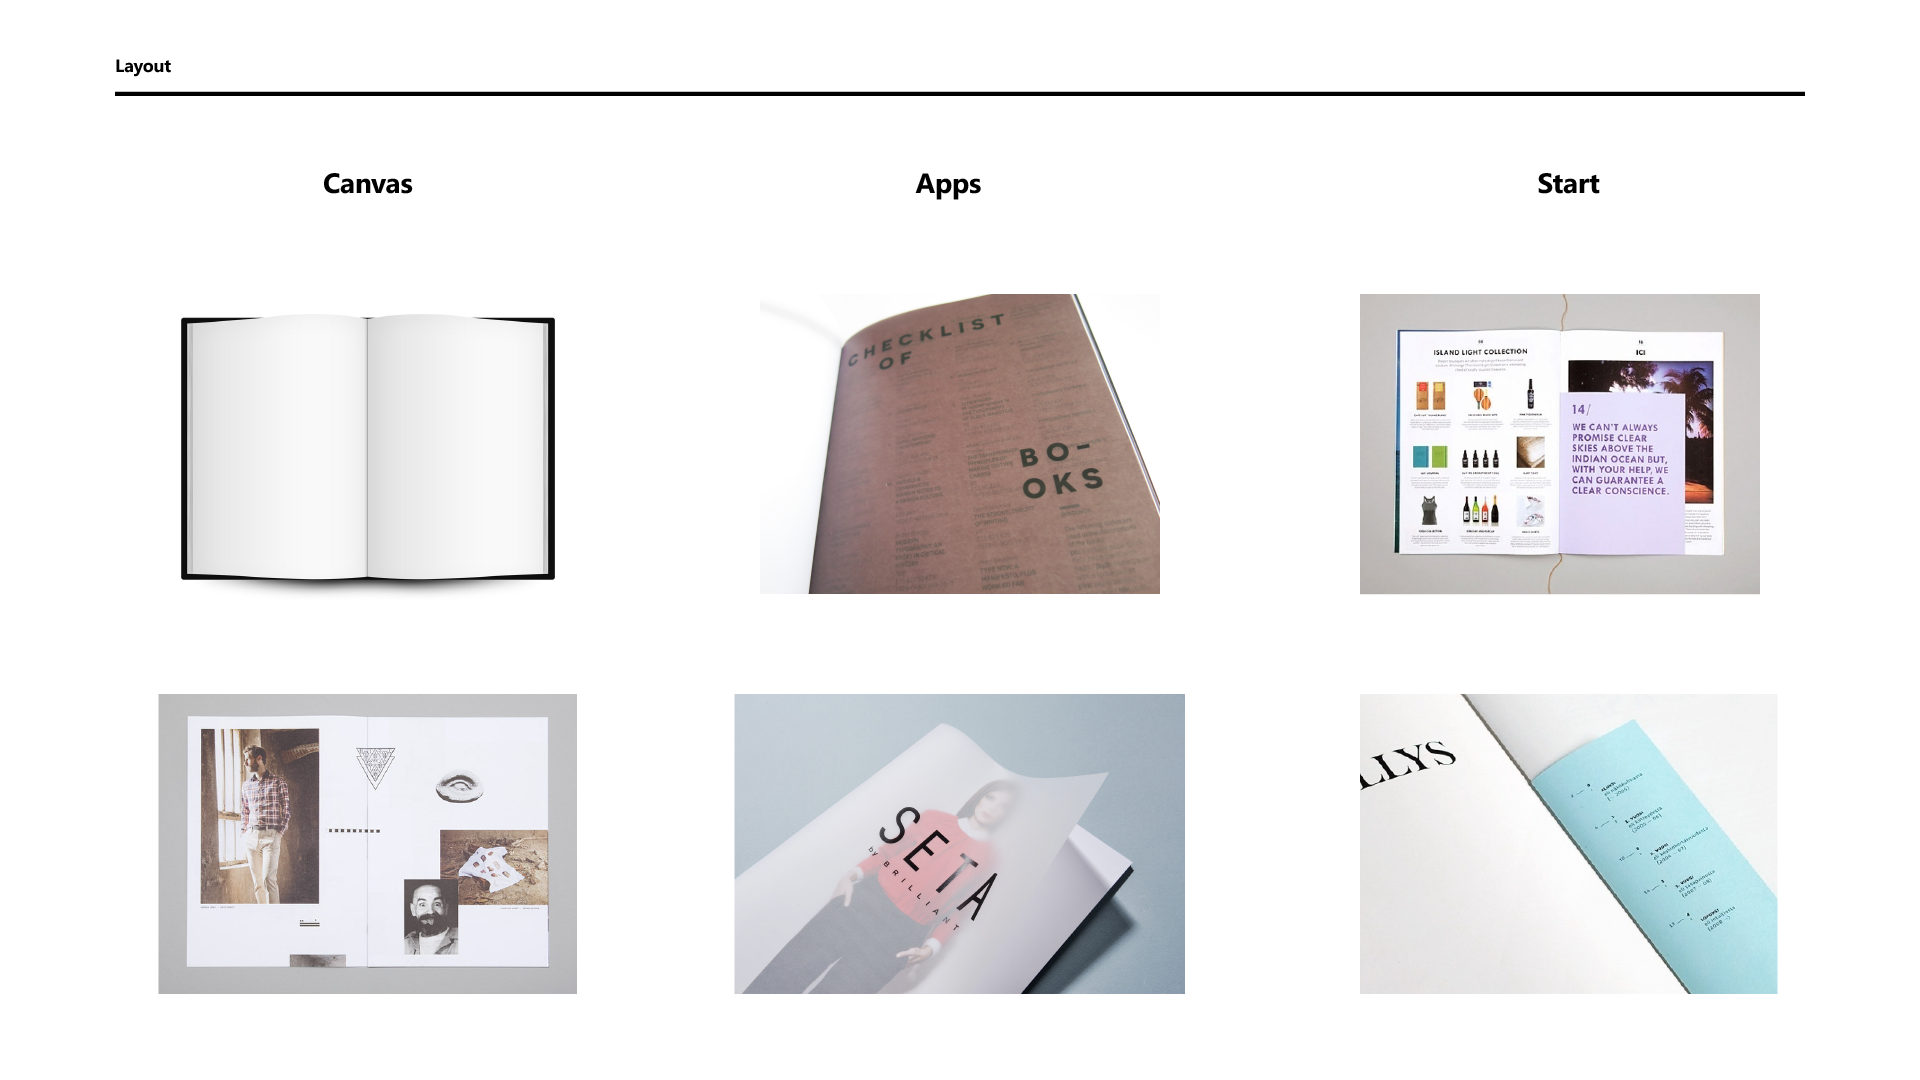 a_DesignGuide_Page_25.png